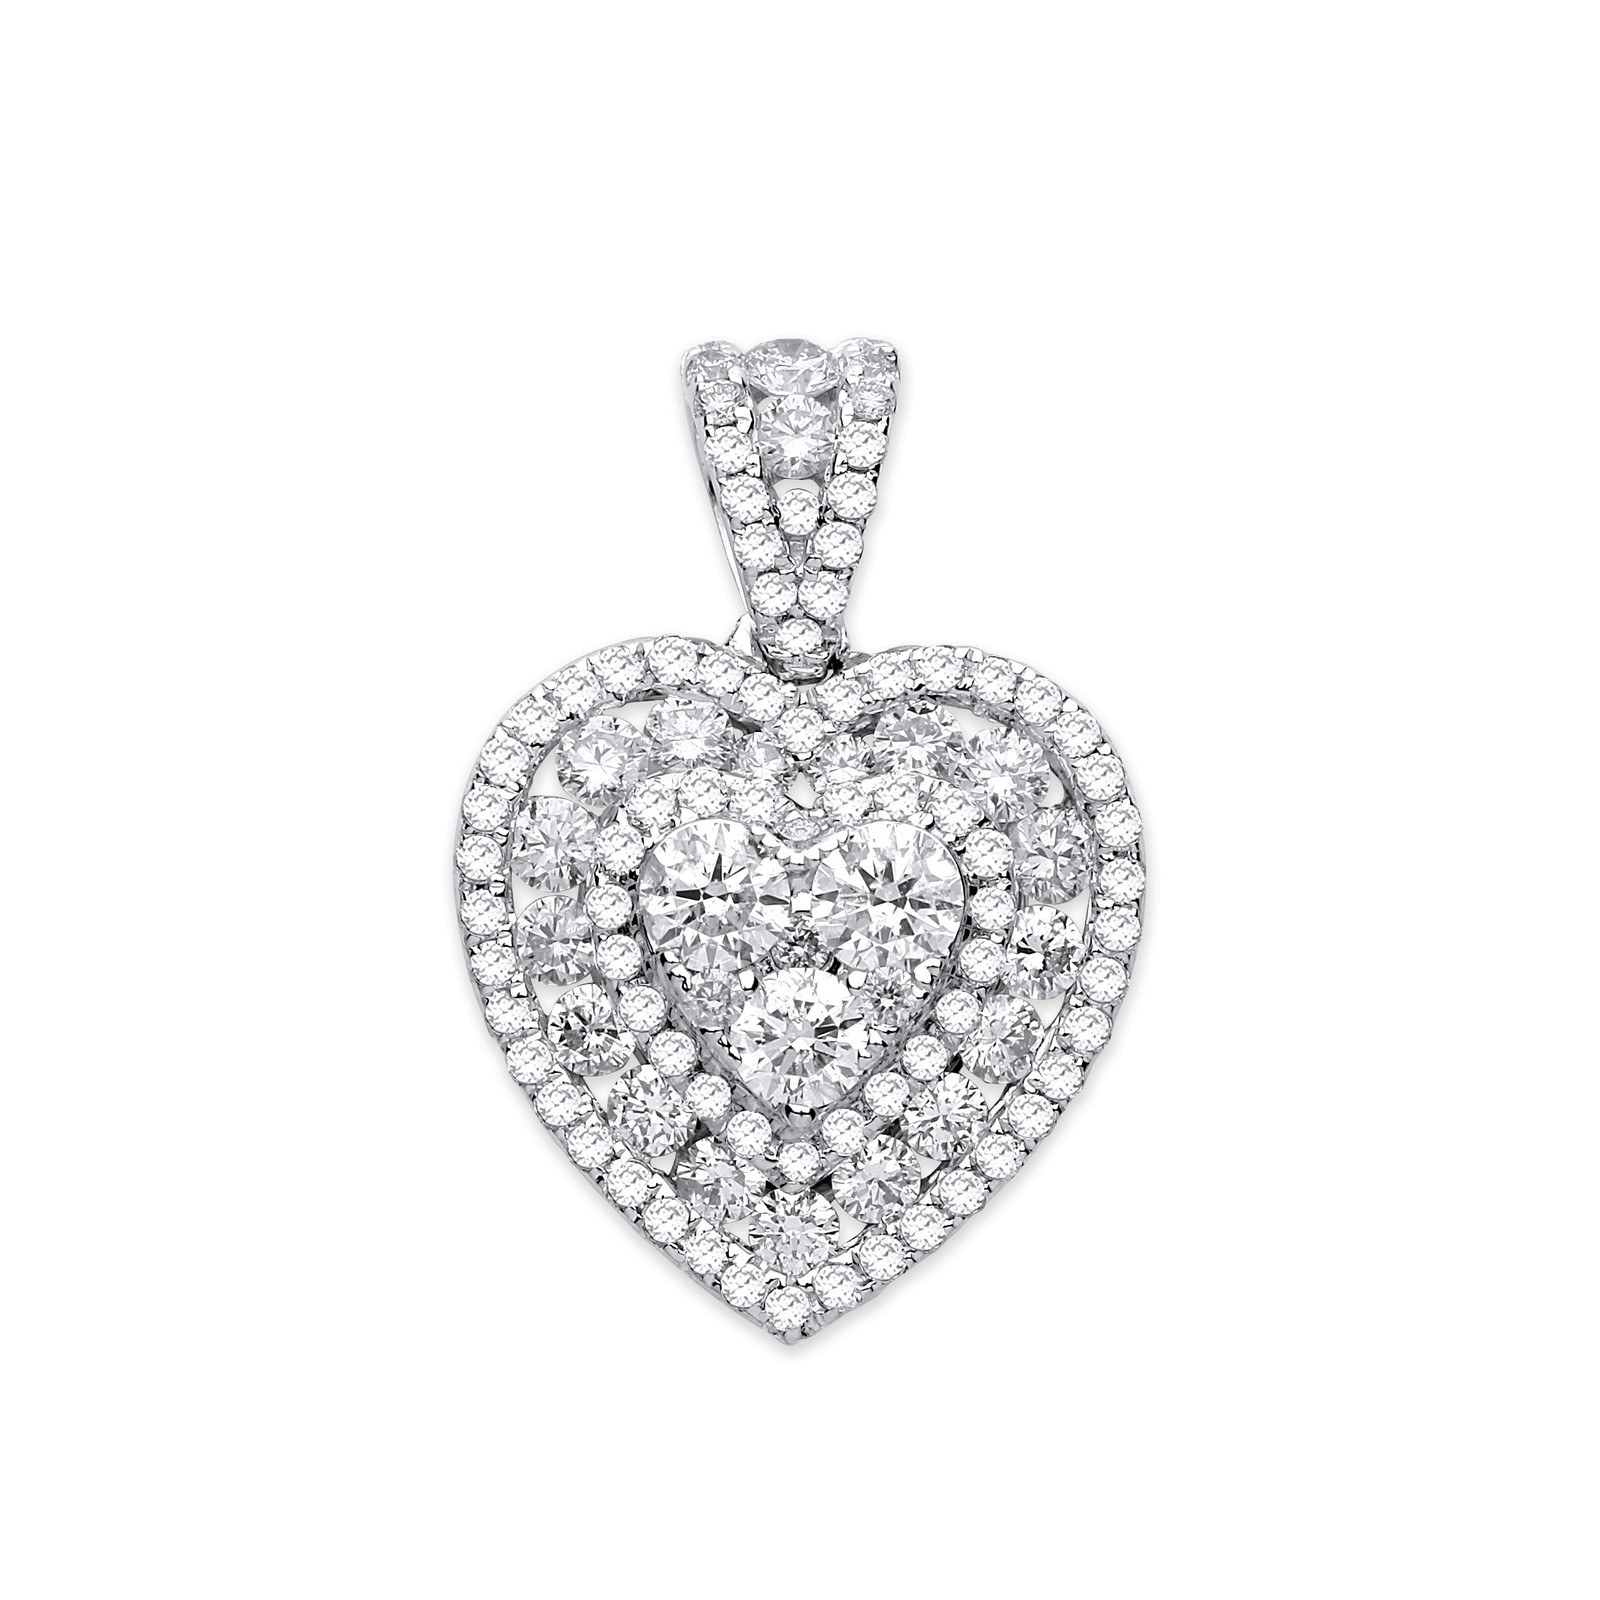 18ct White Gold 1.35ct Heart Pave Diamond Pendant